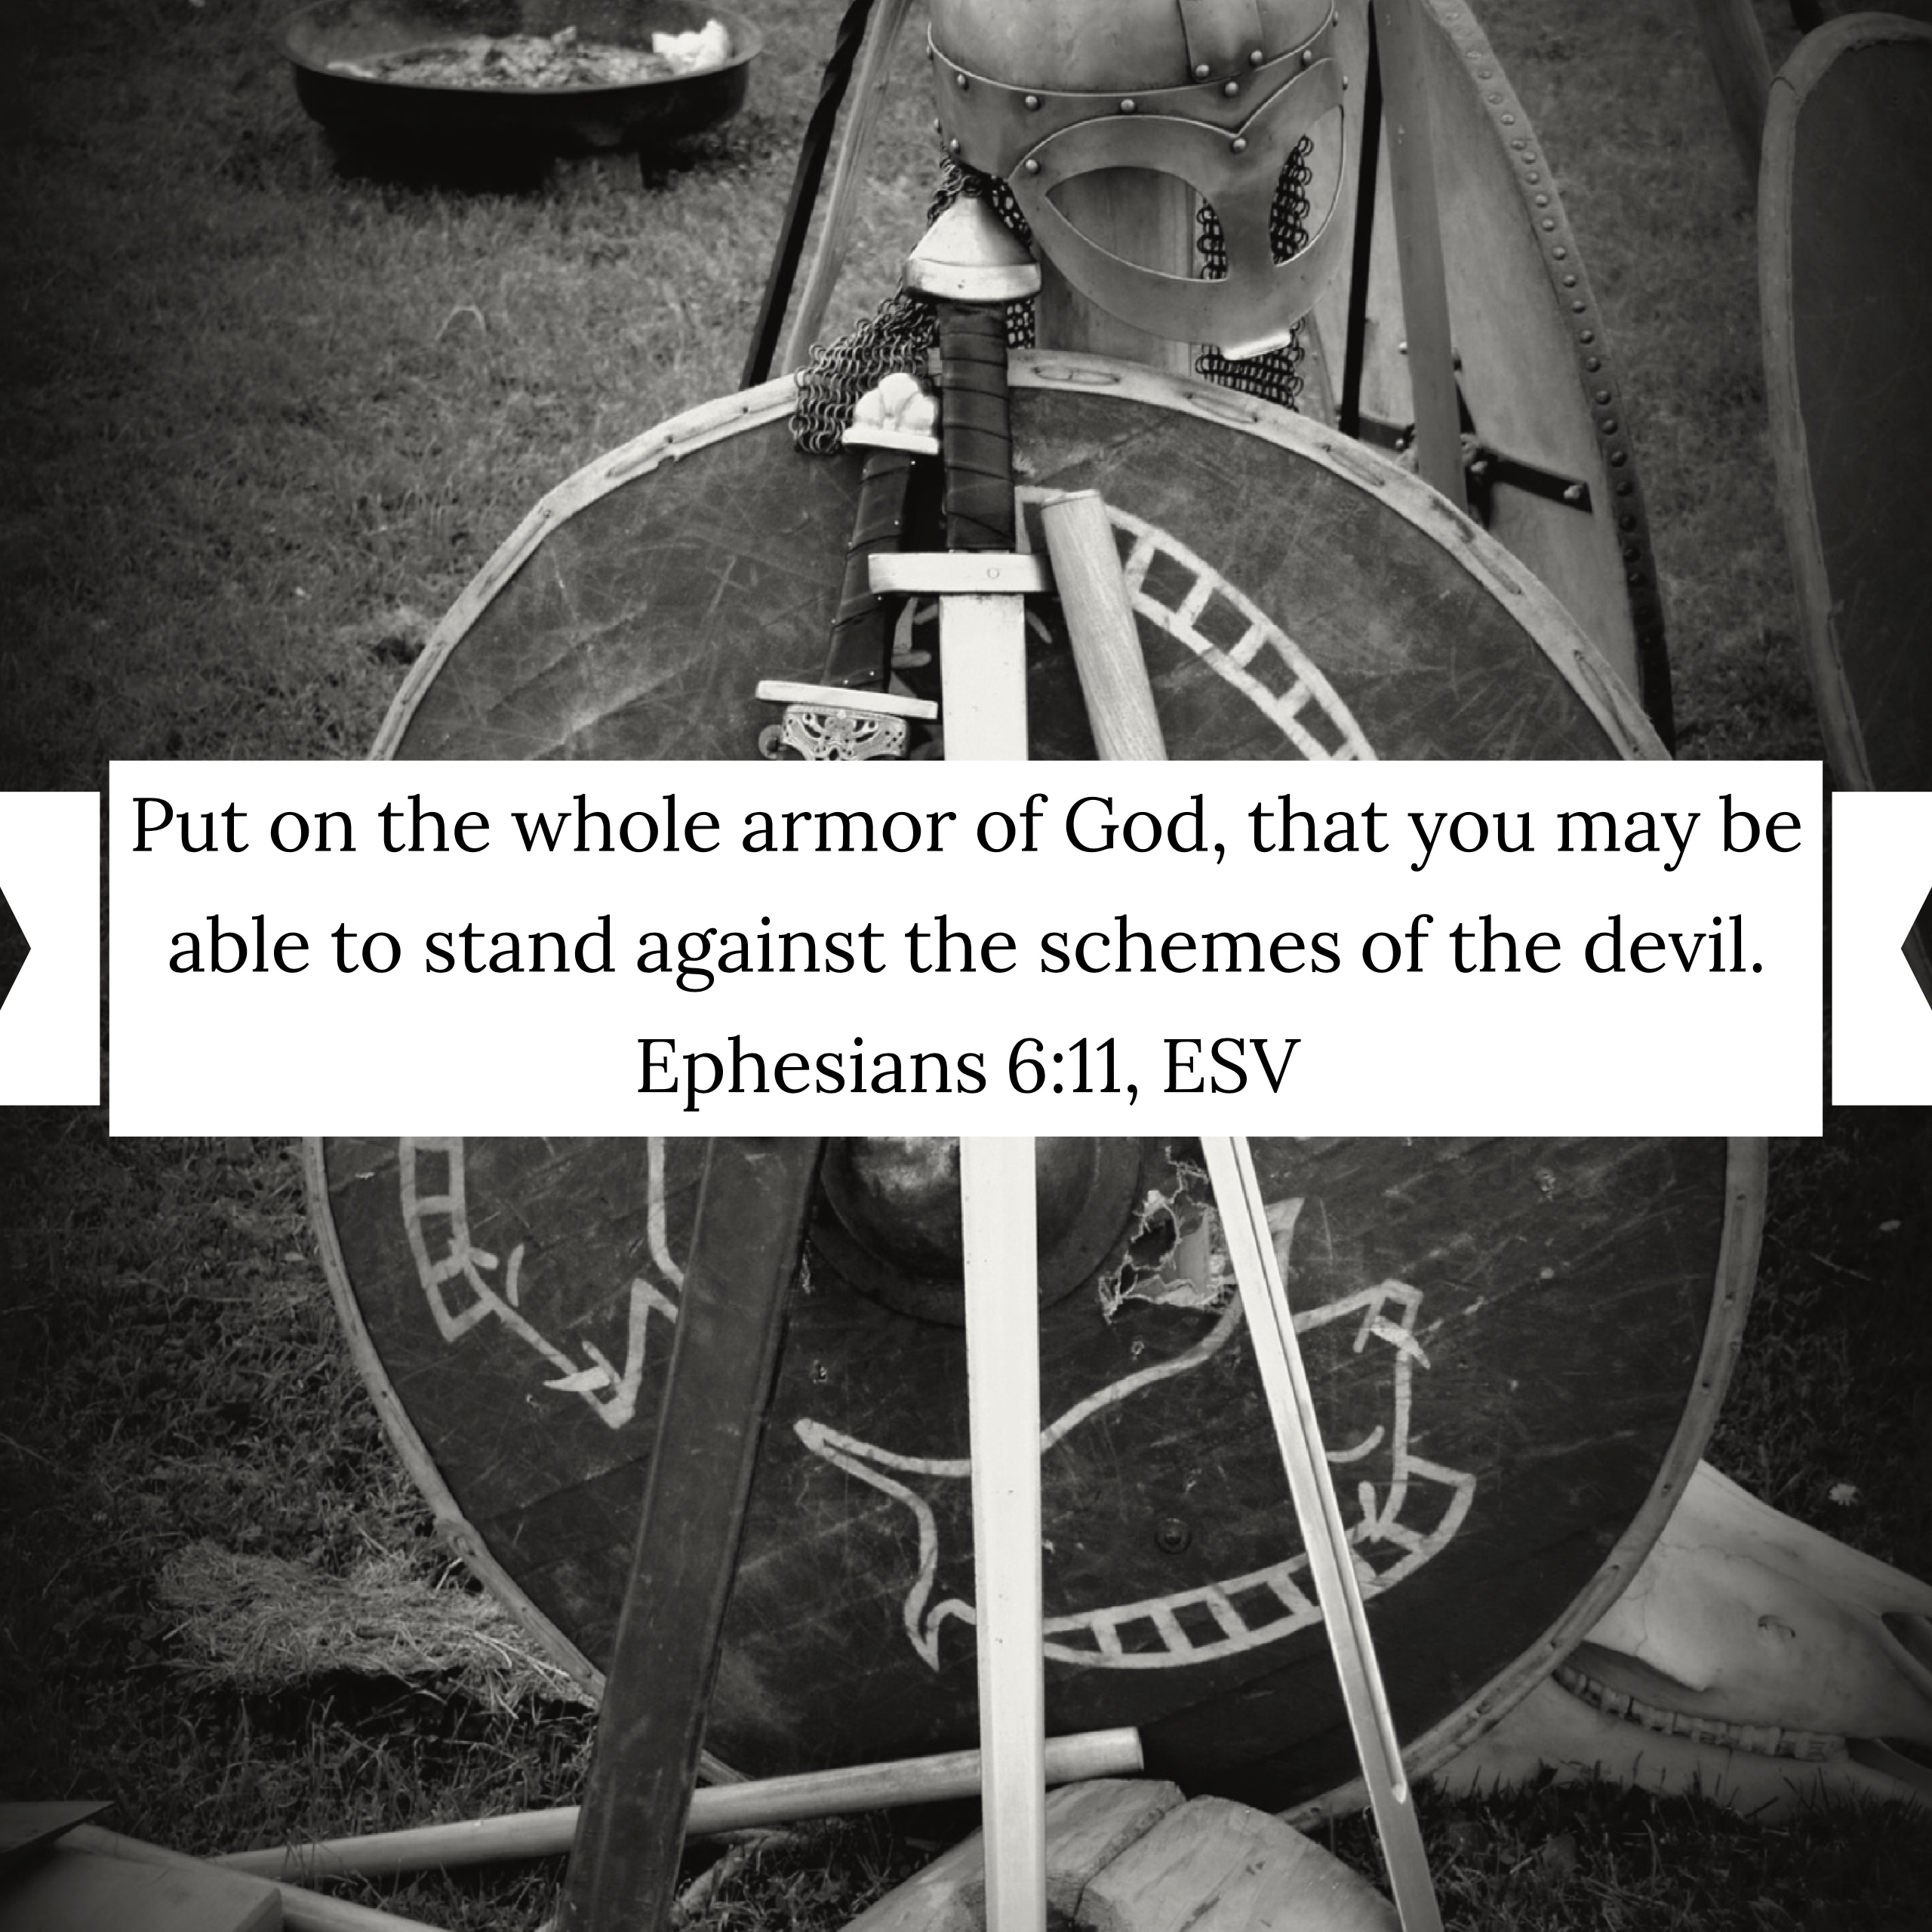 """""""Put on the whole armor of God, that you may be able to stand against the schemes of the devil,"""" (Ephesians 6:11, ESV)."""